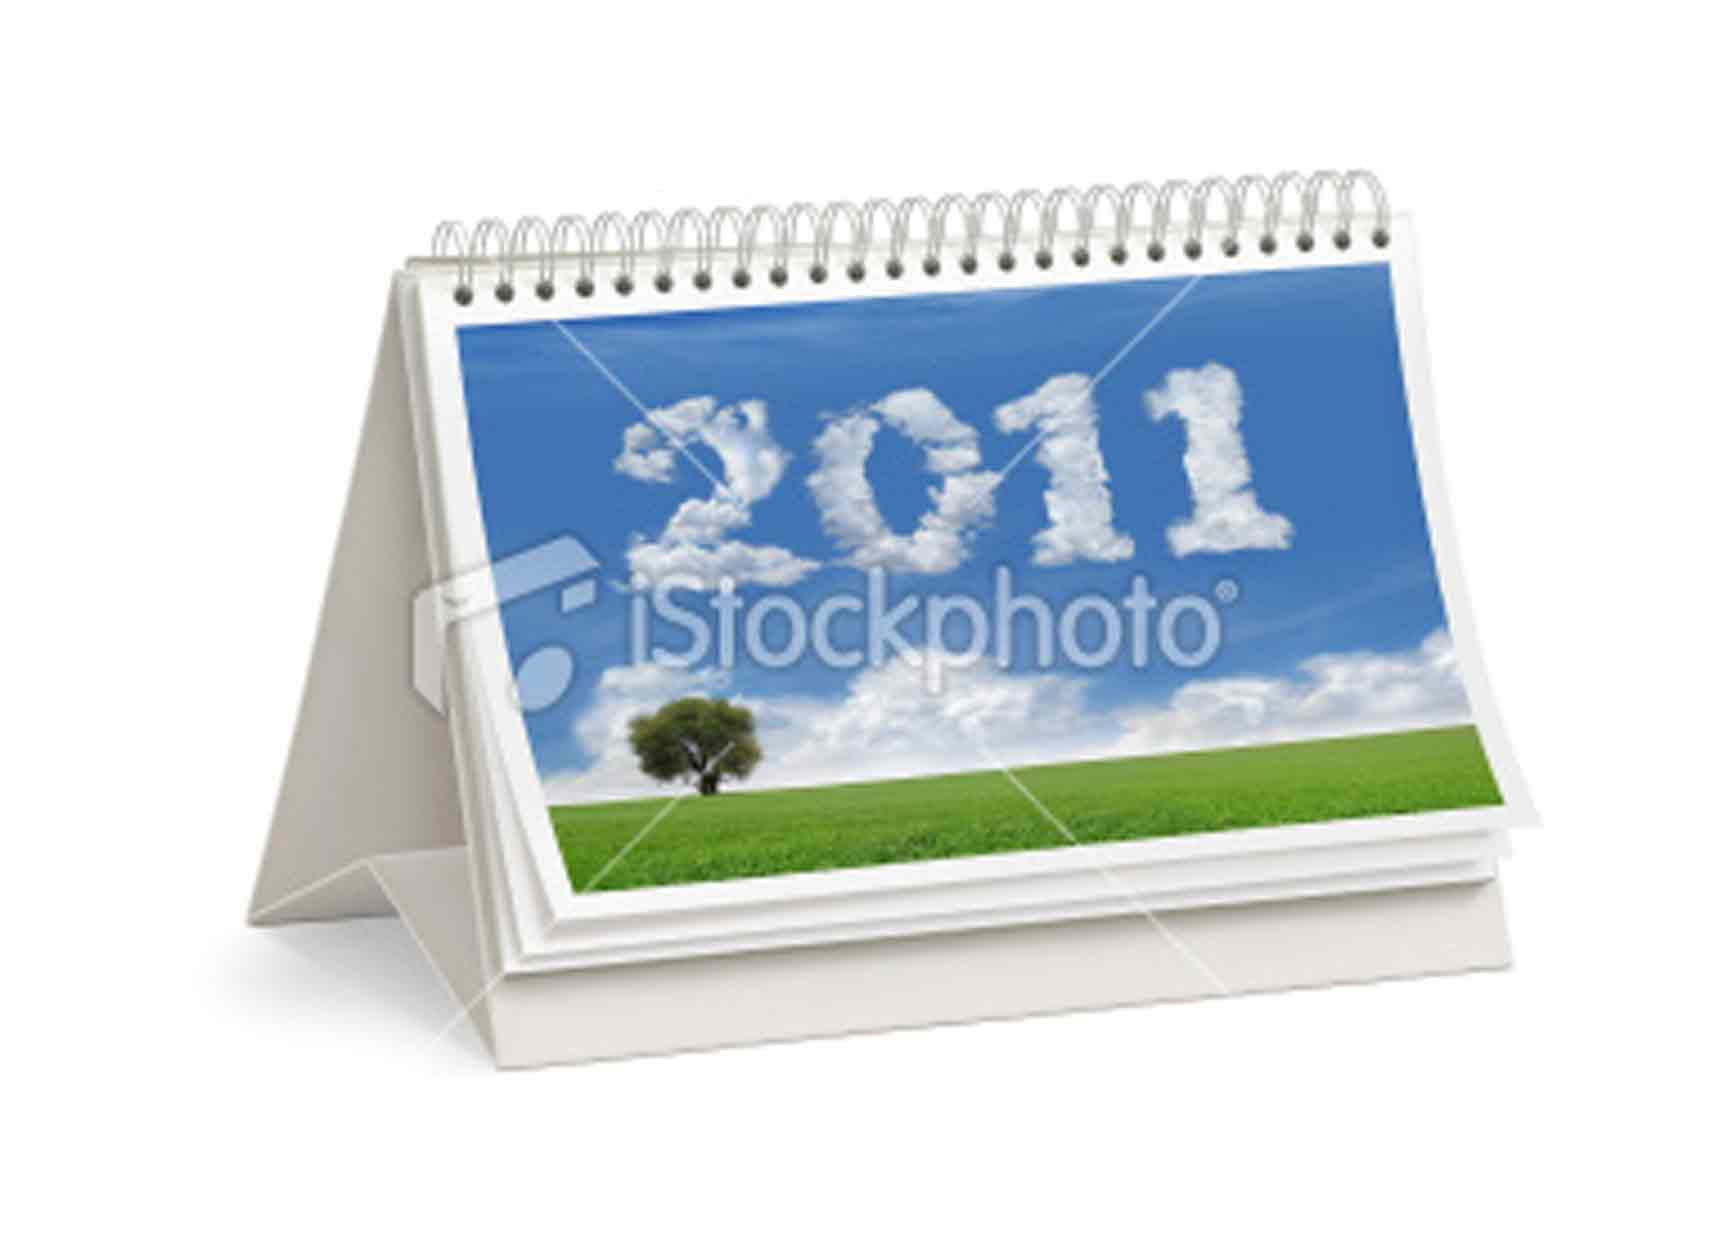 Calendar Cover : Ist  new year desktop calendar cover